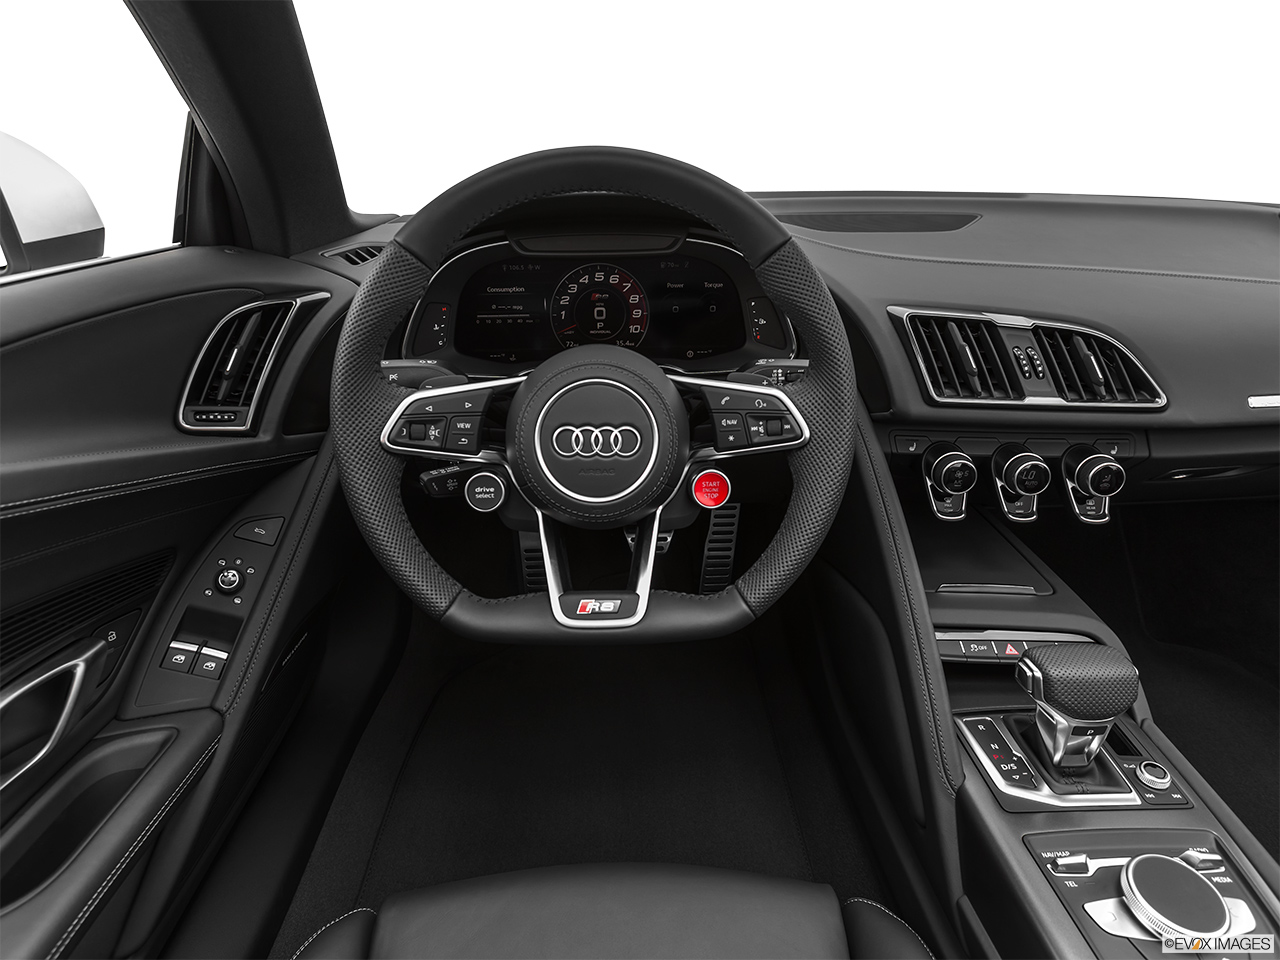 2020 Audi R8 Spyder V10 Steering wheel/Center Console.